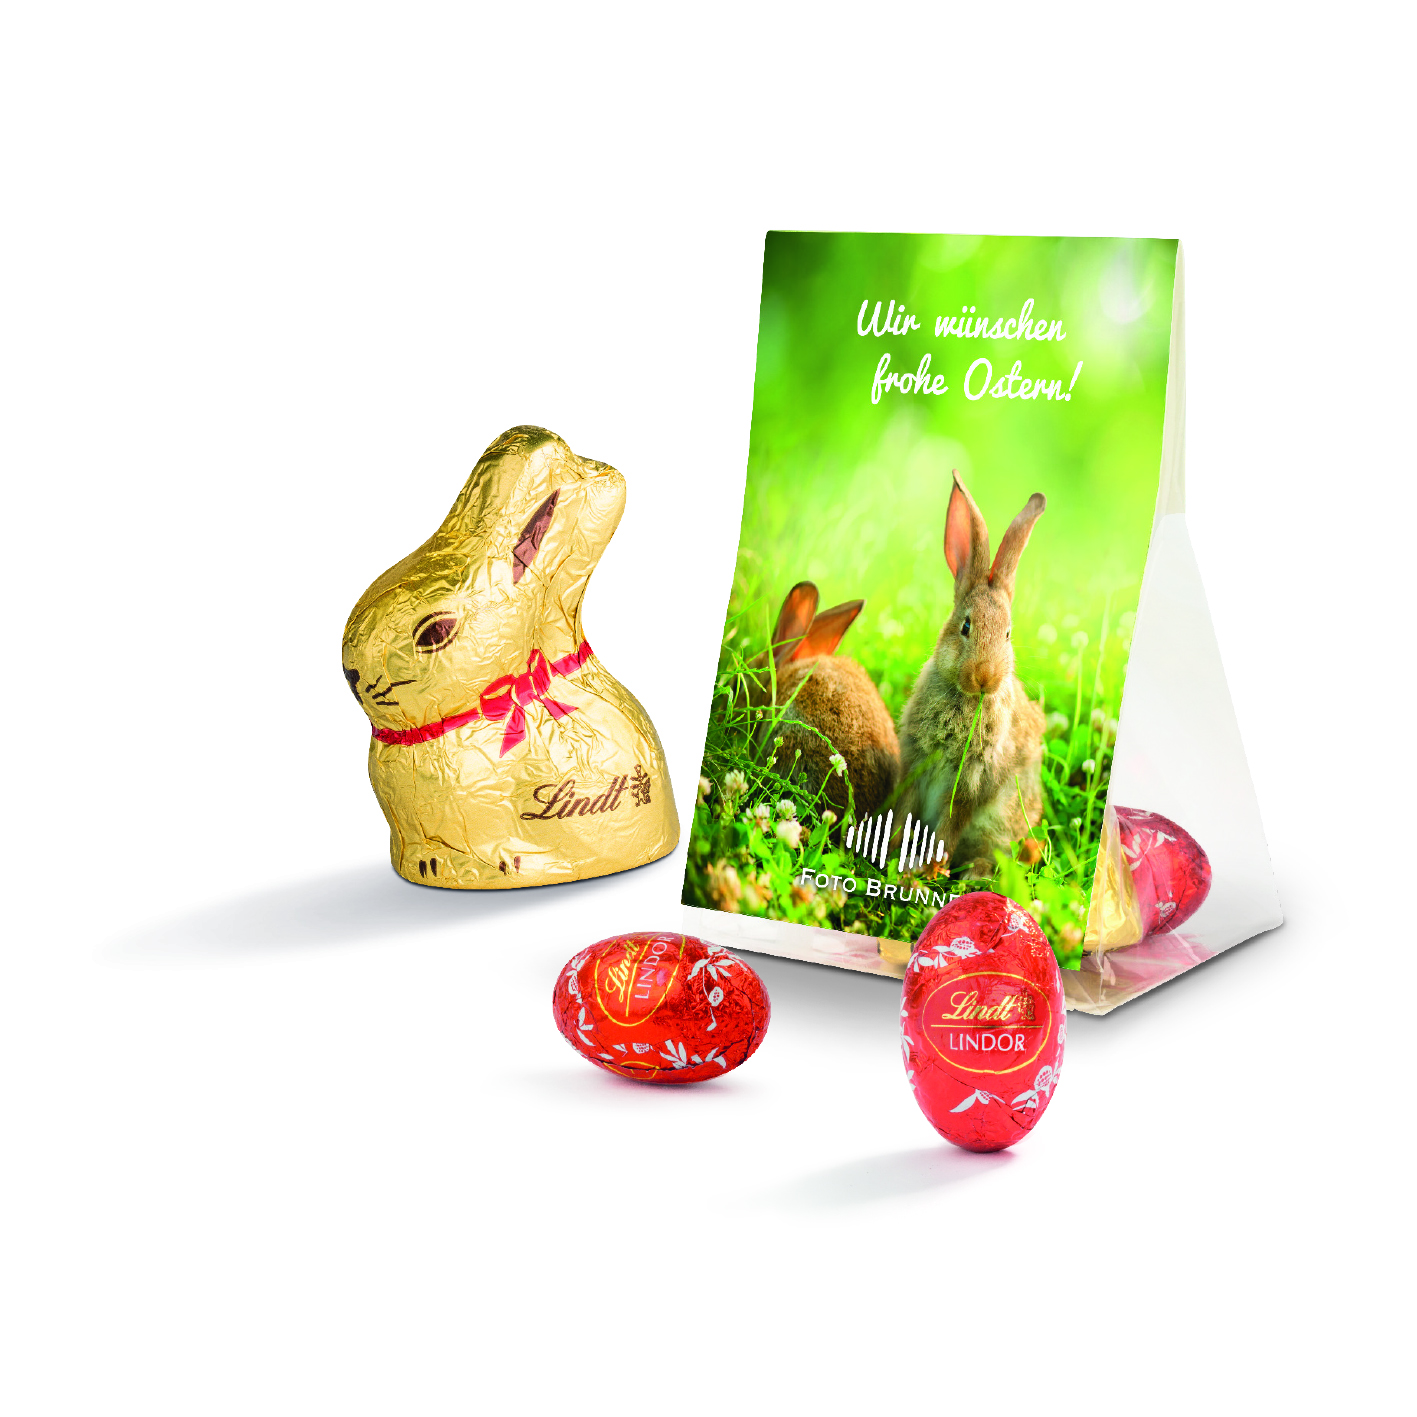 Lindt coupons 2019